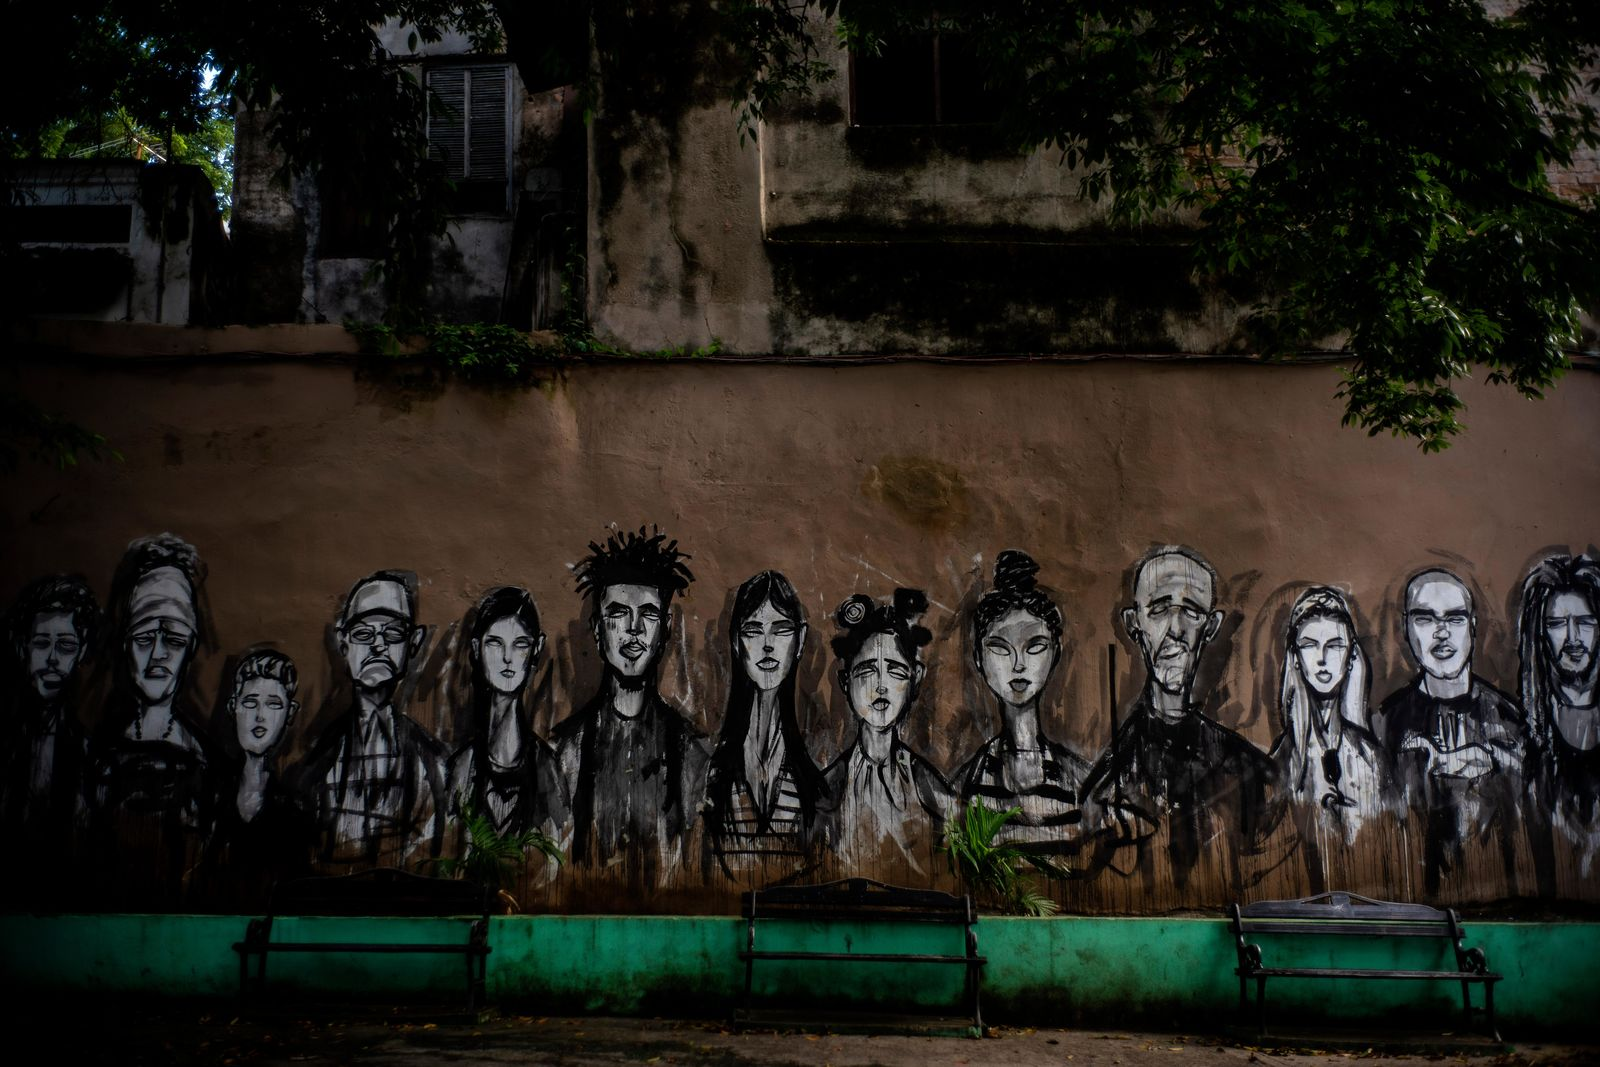 In this Nov. 10, 2019 photo, a wall is covered by a mural of faces, representing local residents, in a plaza in Old Havana, Cuba. The city will celebrate its 500th anniversary on Nov. 16. (AP Photo/Ramon Espinosa)